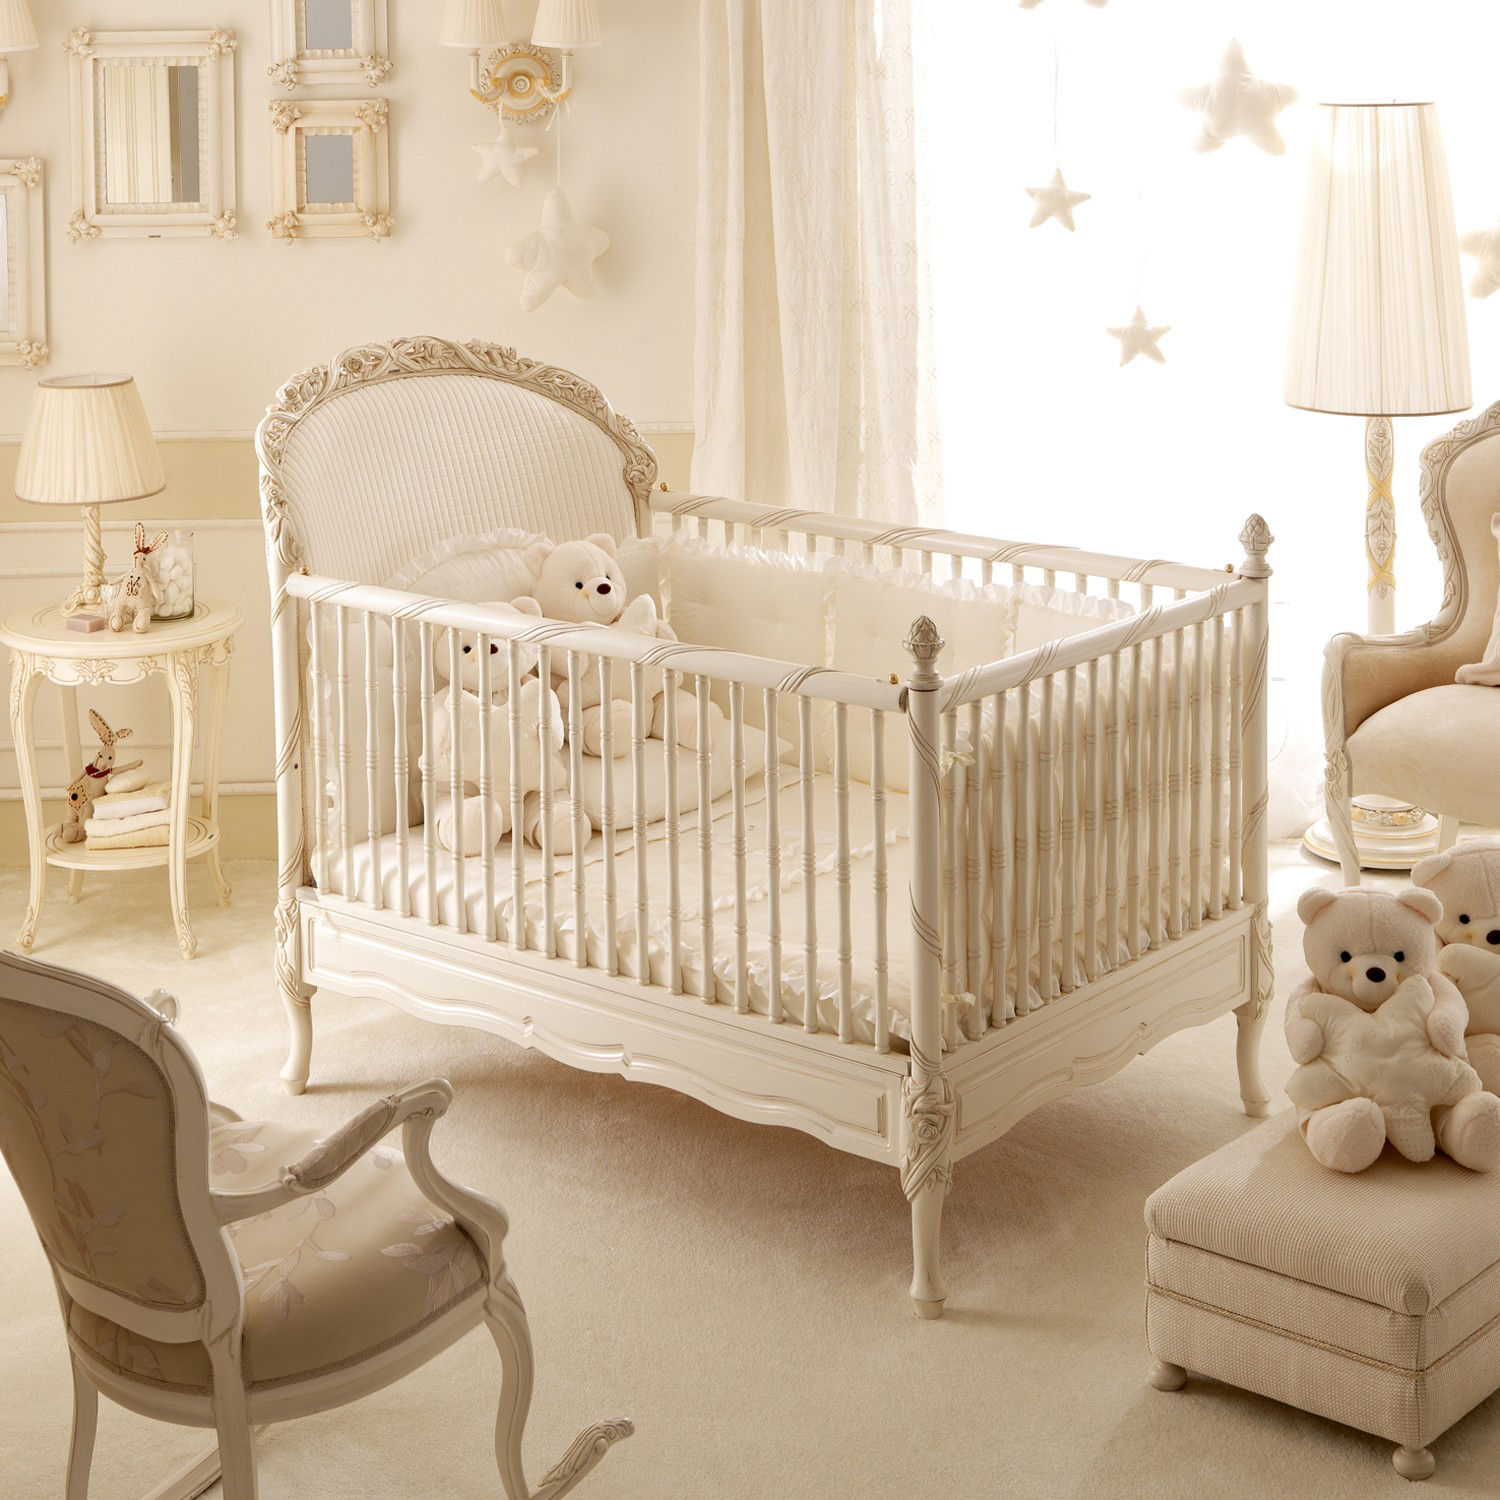 Baby cribs pictures - Notte Fatata Crib From Petit Tresor